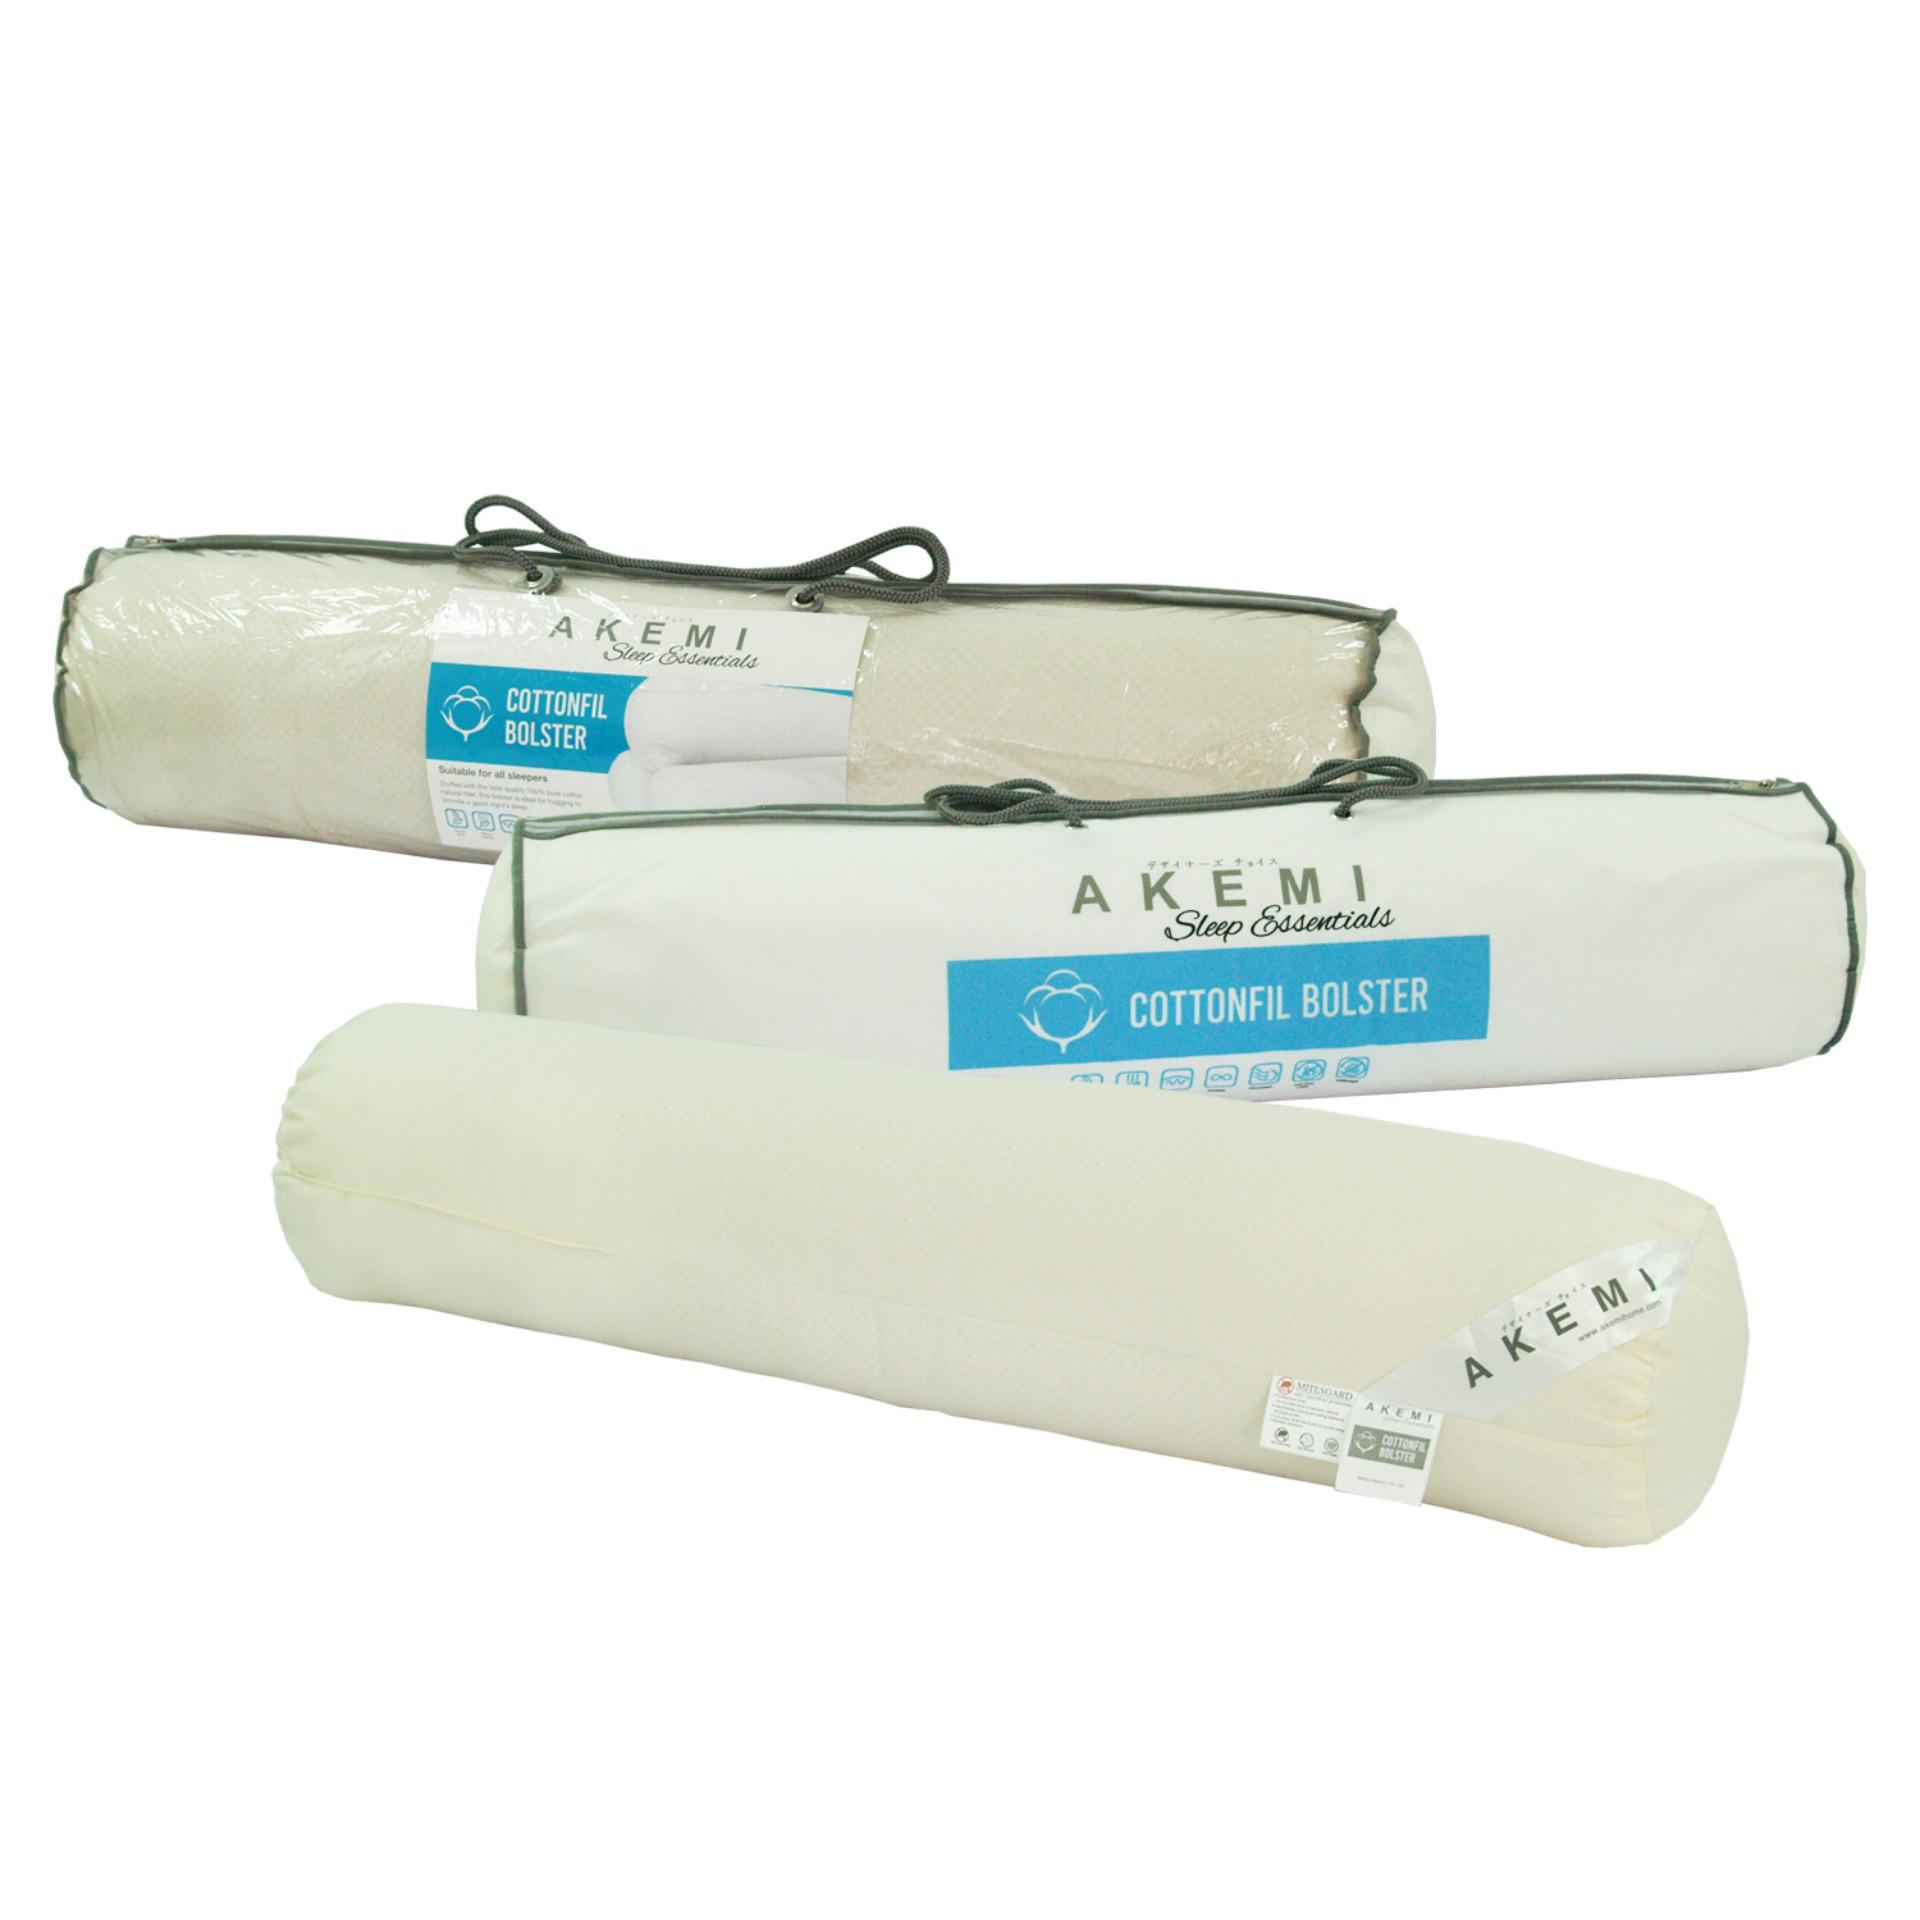 AKEMI Sleep Essentials Cottonfil Bolster